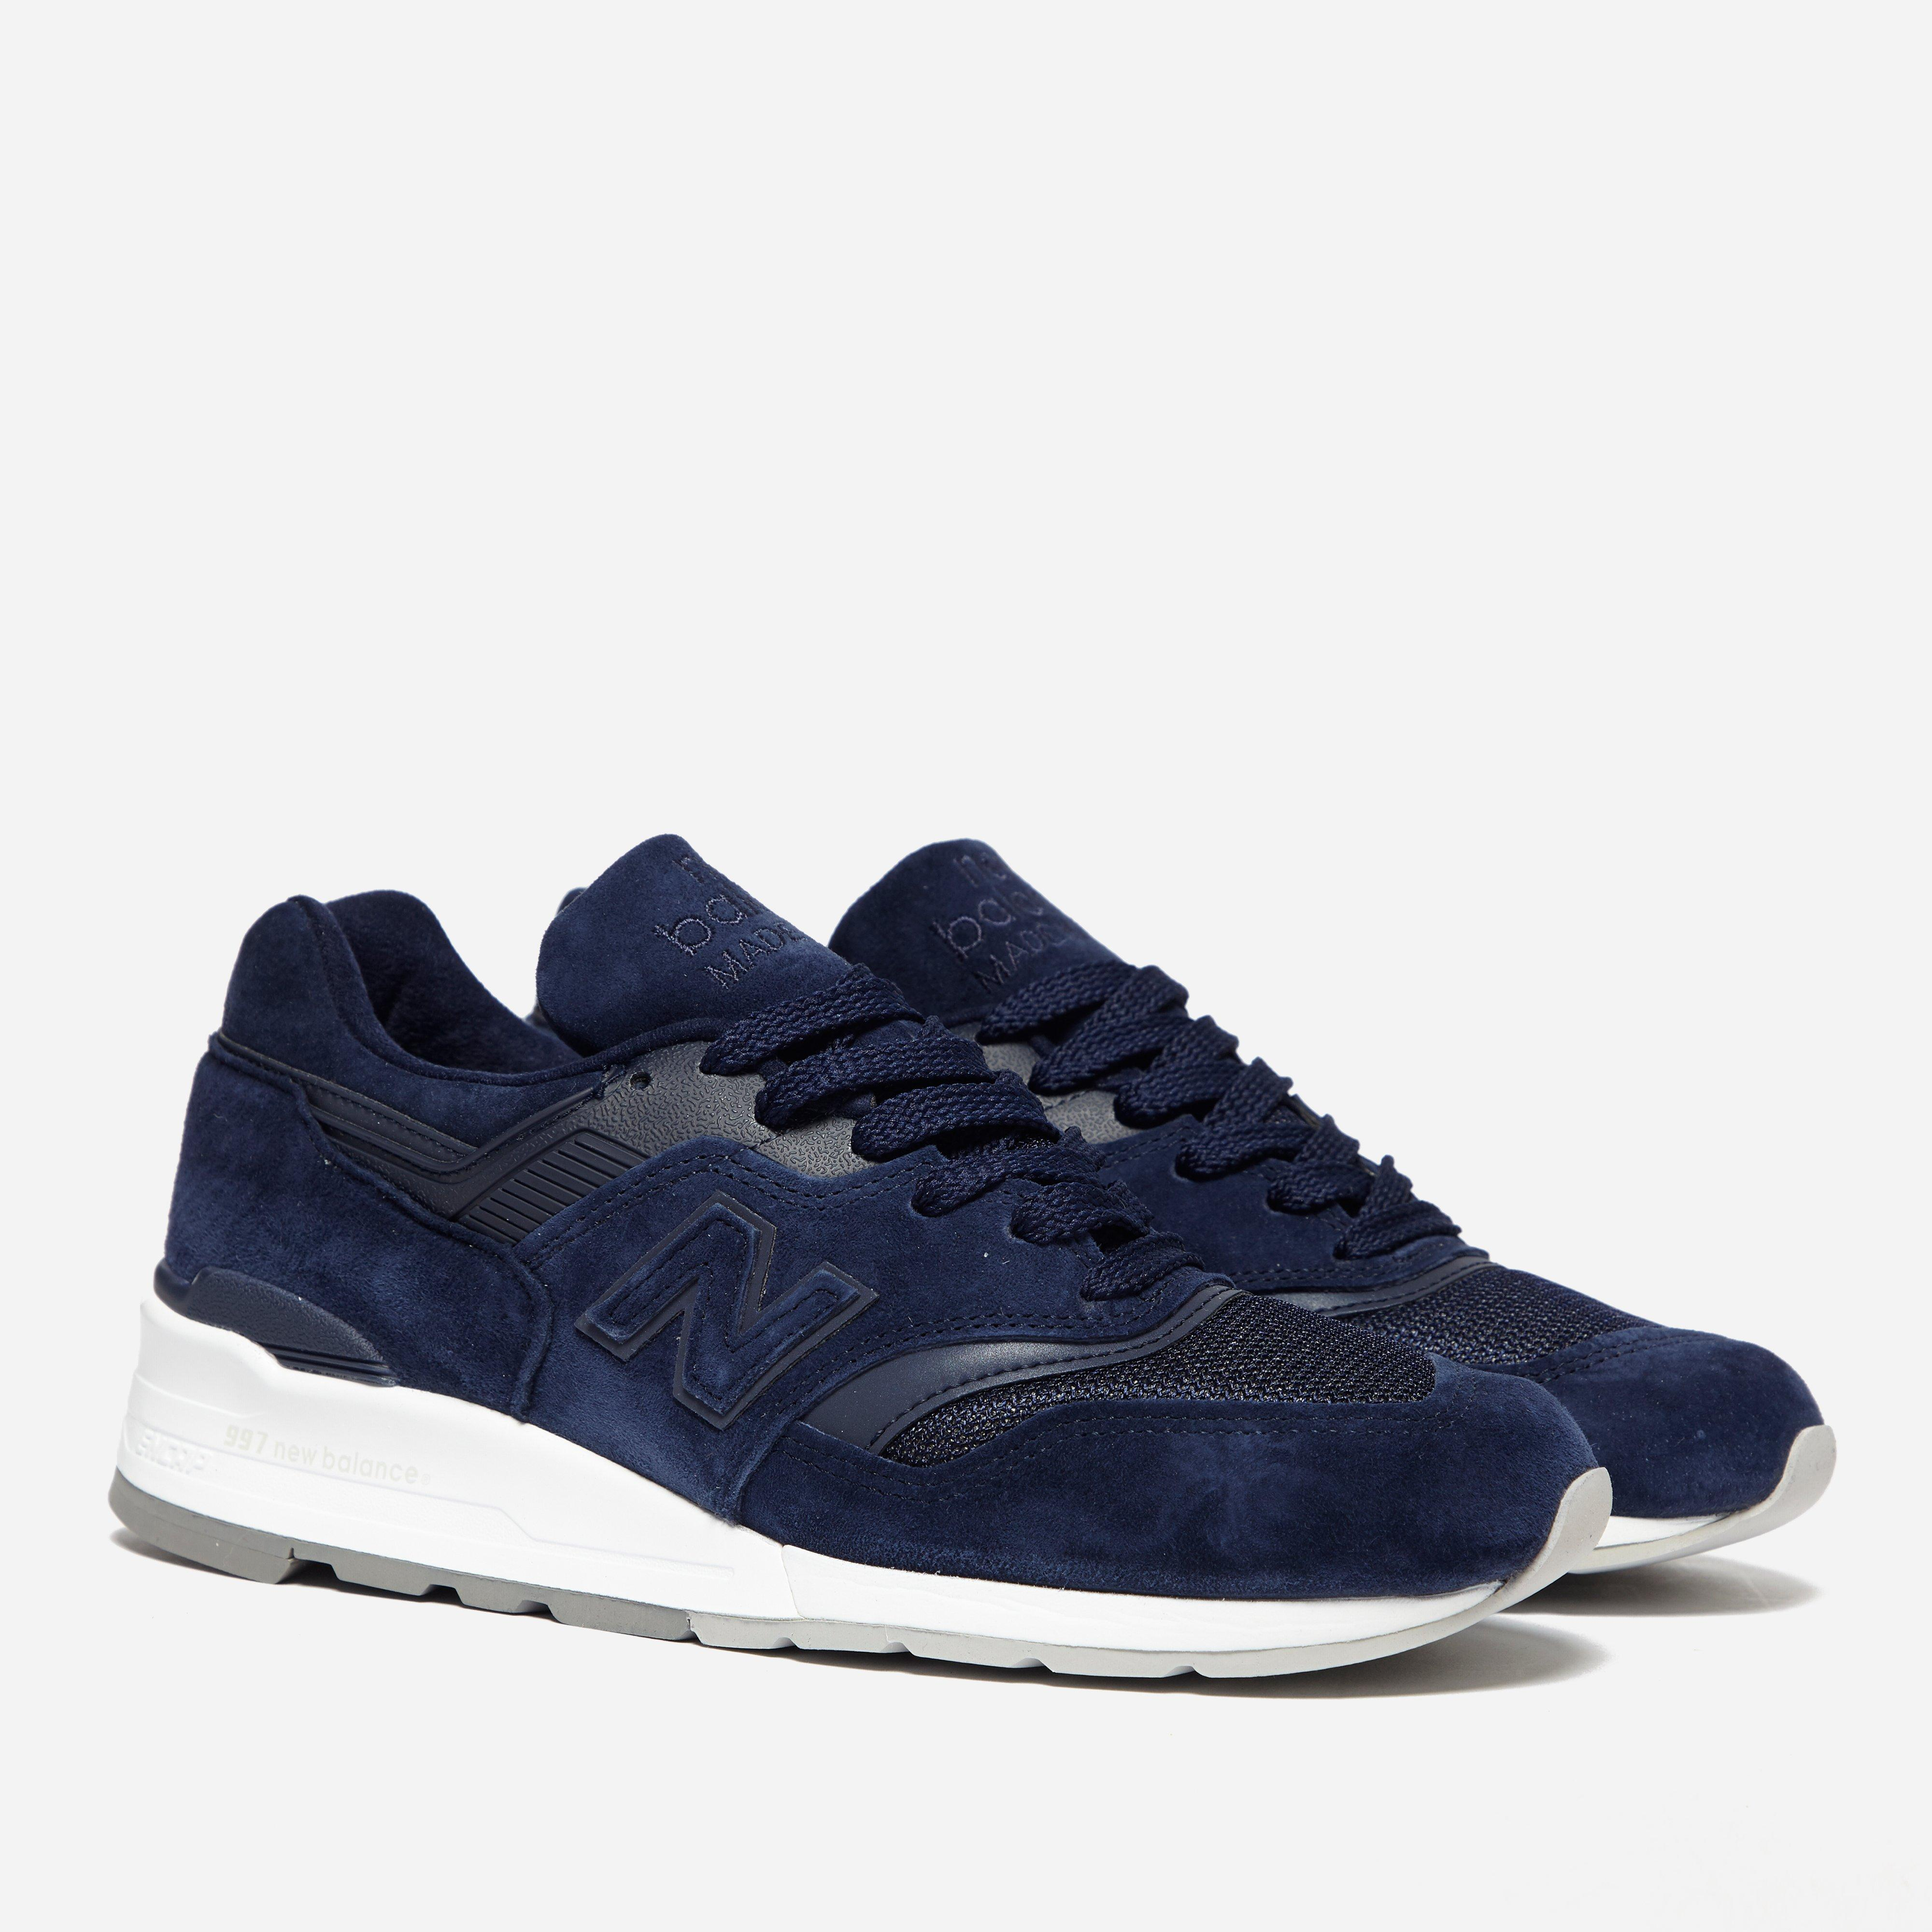 New Balance M 997 CO Made in USA